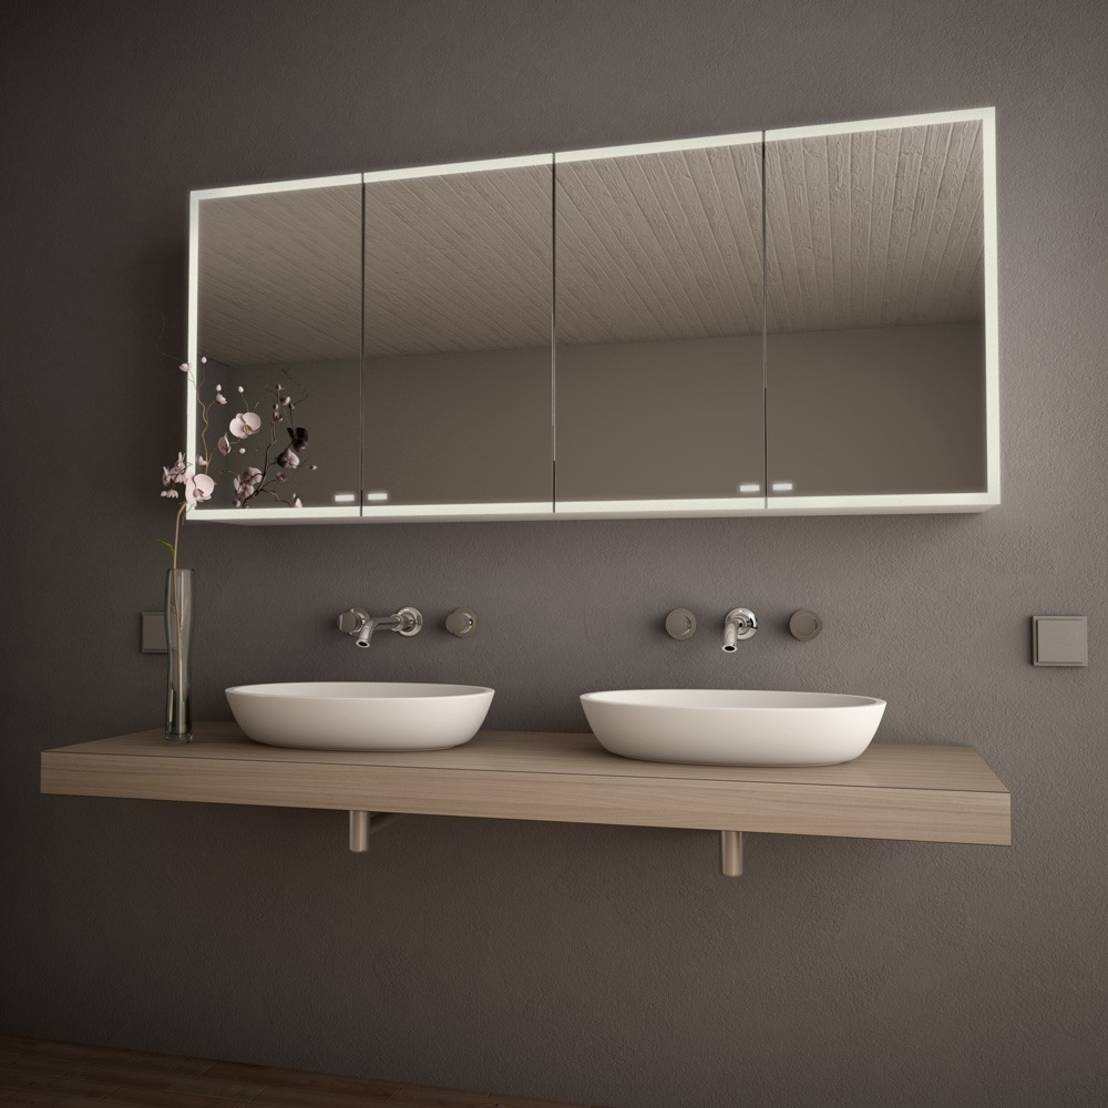 il bagno moderno con lo specchio contenitore. Black Bedroom Furniture Sets. Home Design Ideas